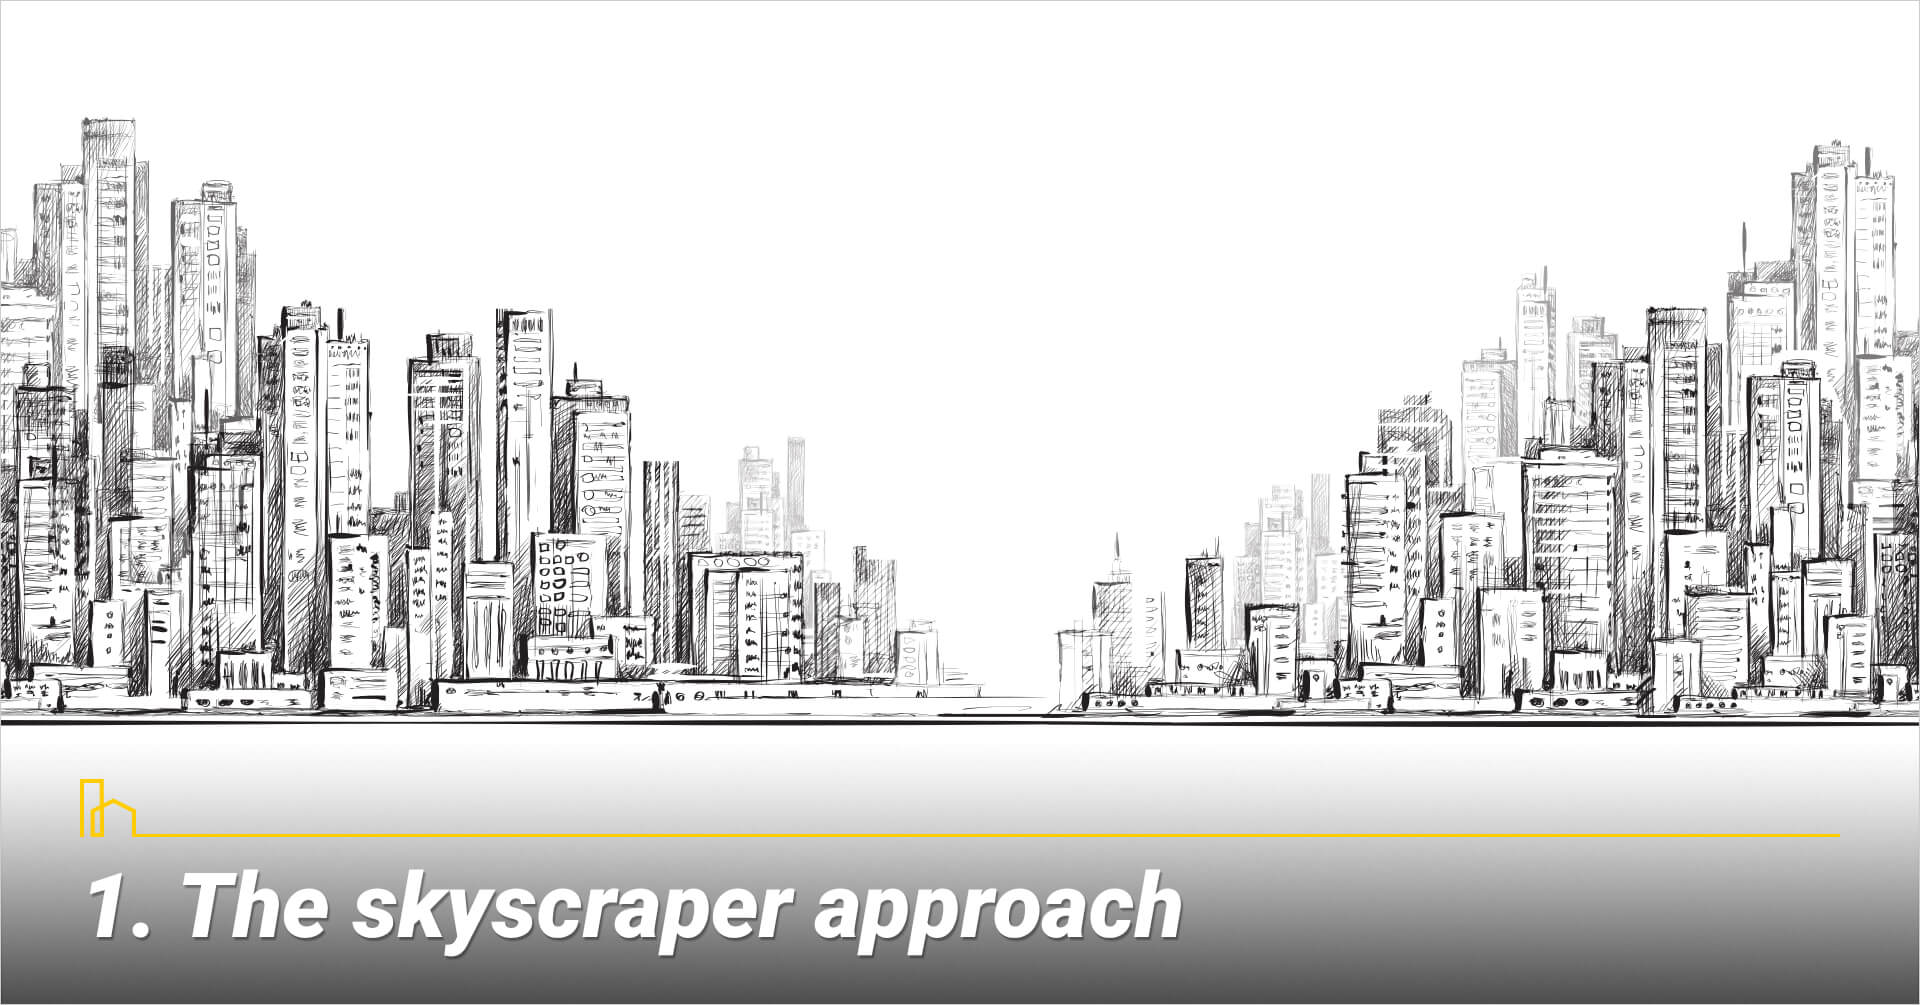 The skyscraper approach